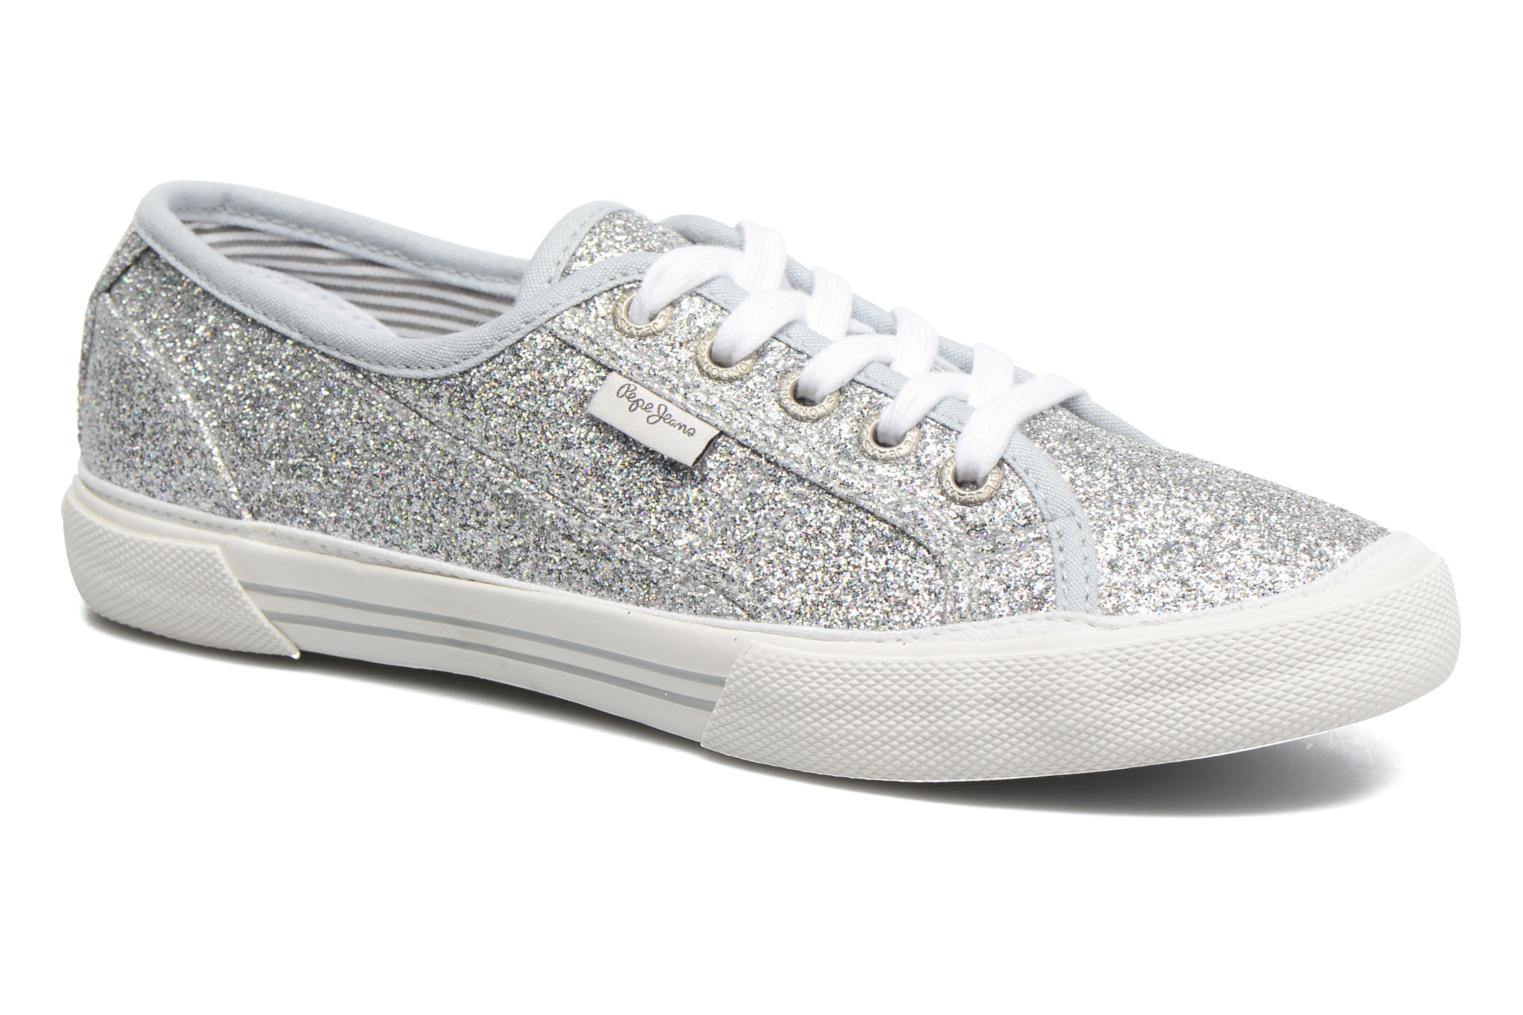 Marques Chaussure femme Pepe jeans femme Aberlady Flash Silver